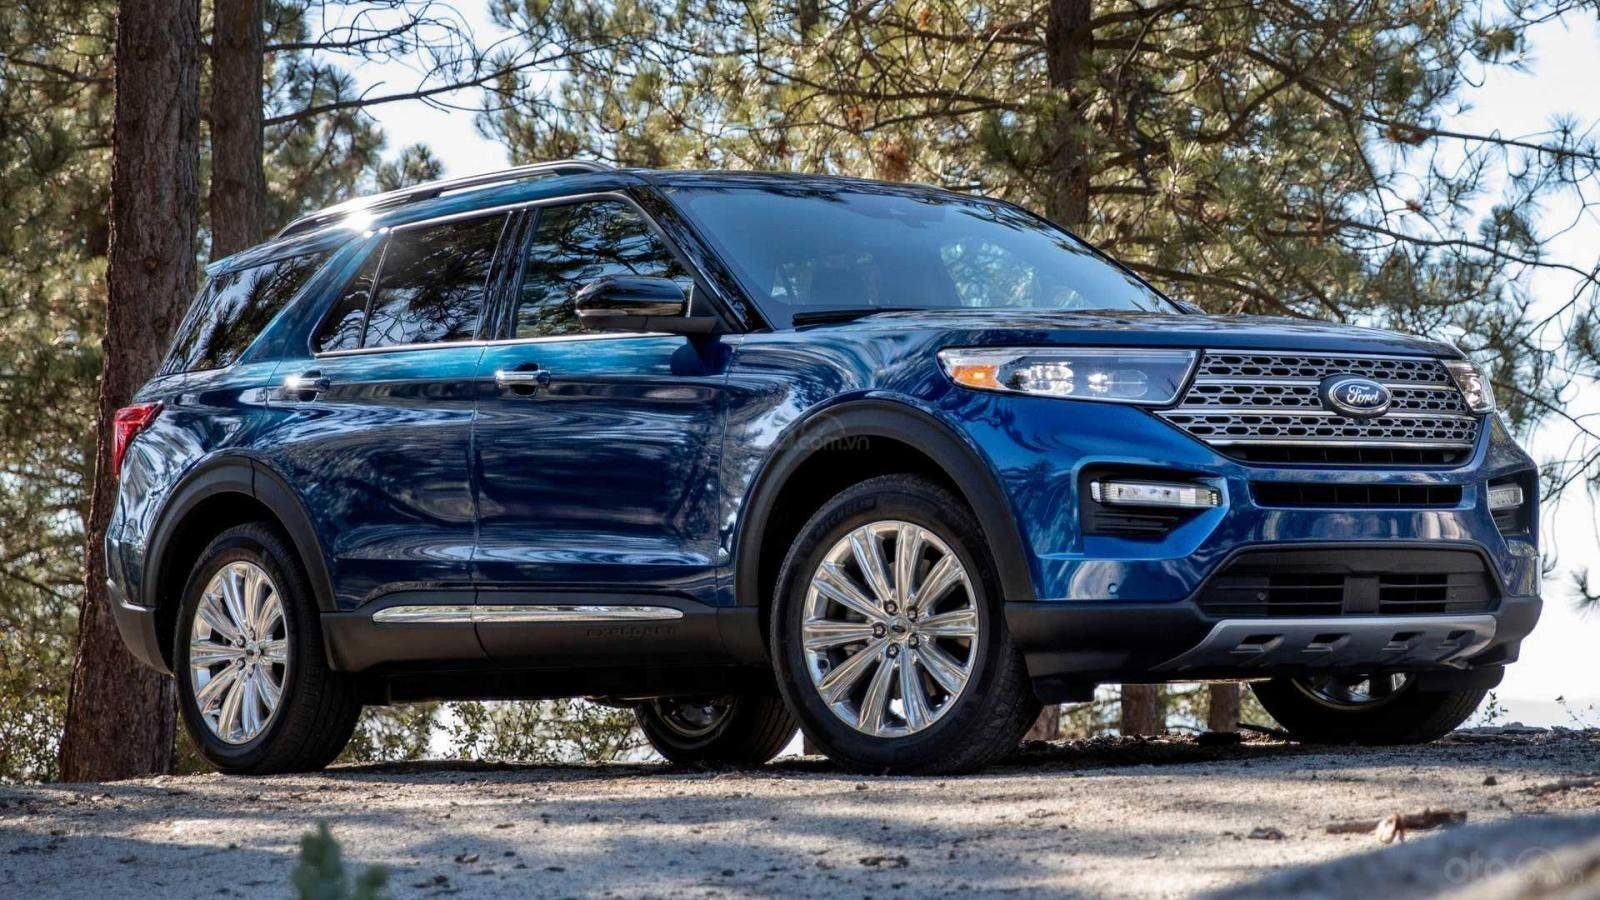 Xe Ford Explorer 2020 Photos In 2020 Ford Explorer 2020 Ford Explorer Ford Suv